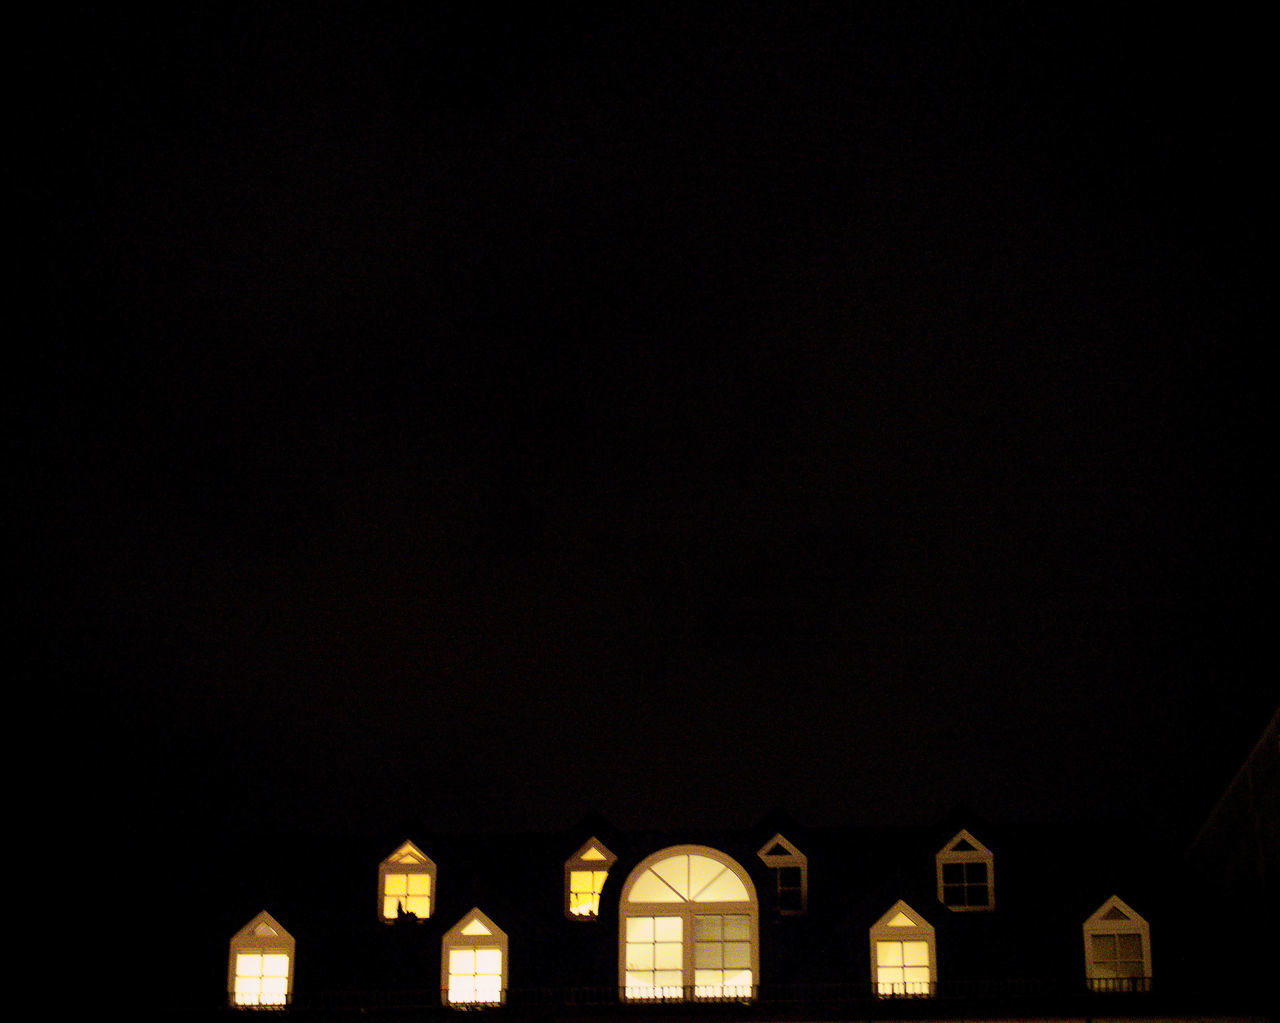 Architecture Building Exterior Built Structure City Copy Space Freiburg House Top Lights In The Dark Low Angle View Night No People Outdoors Sky Windows